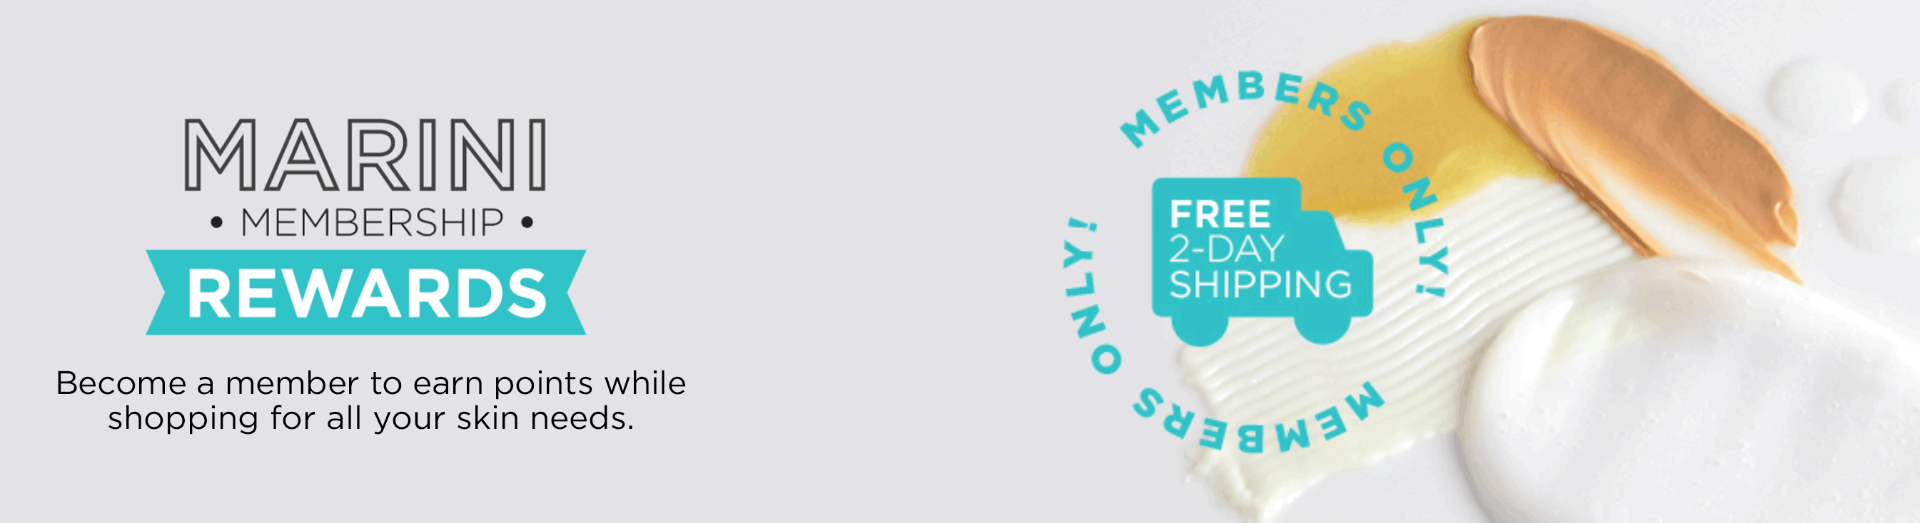 Marini Membership Rewards Become a member for all your skin needs. Members only! Free 2-Day Shipping